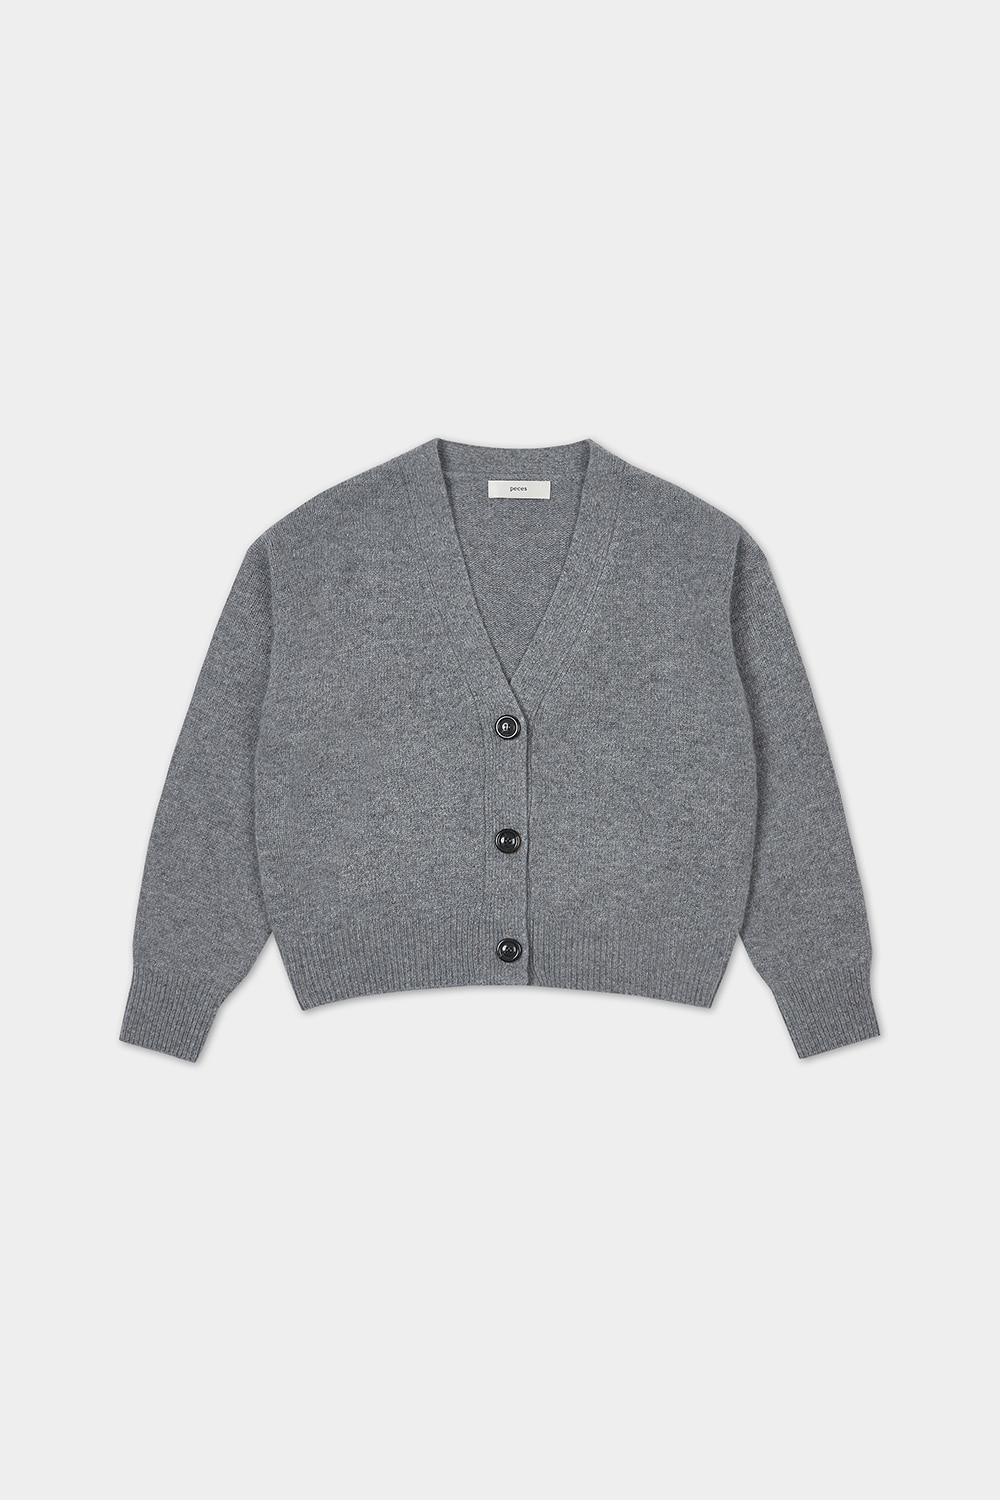 CASHMERE BLENDED CARDIGAN (GREY)